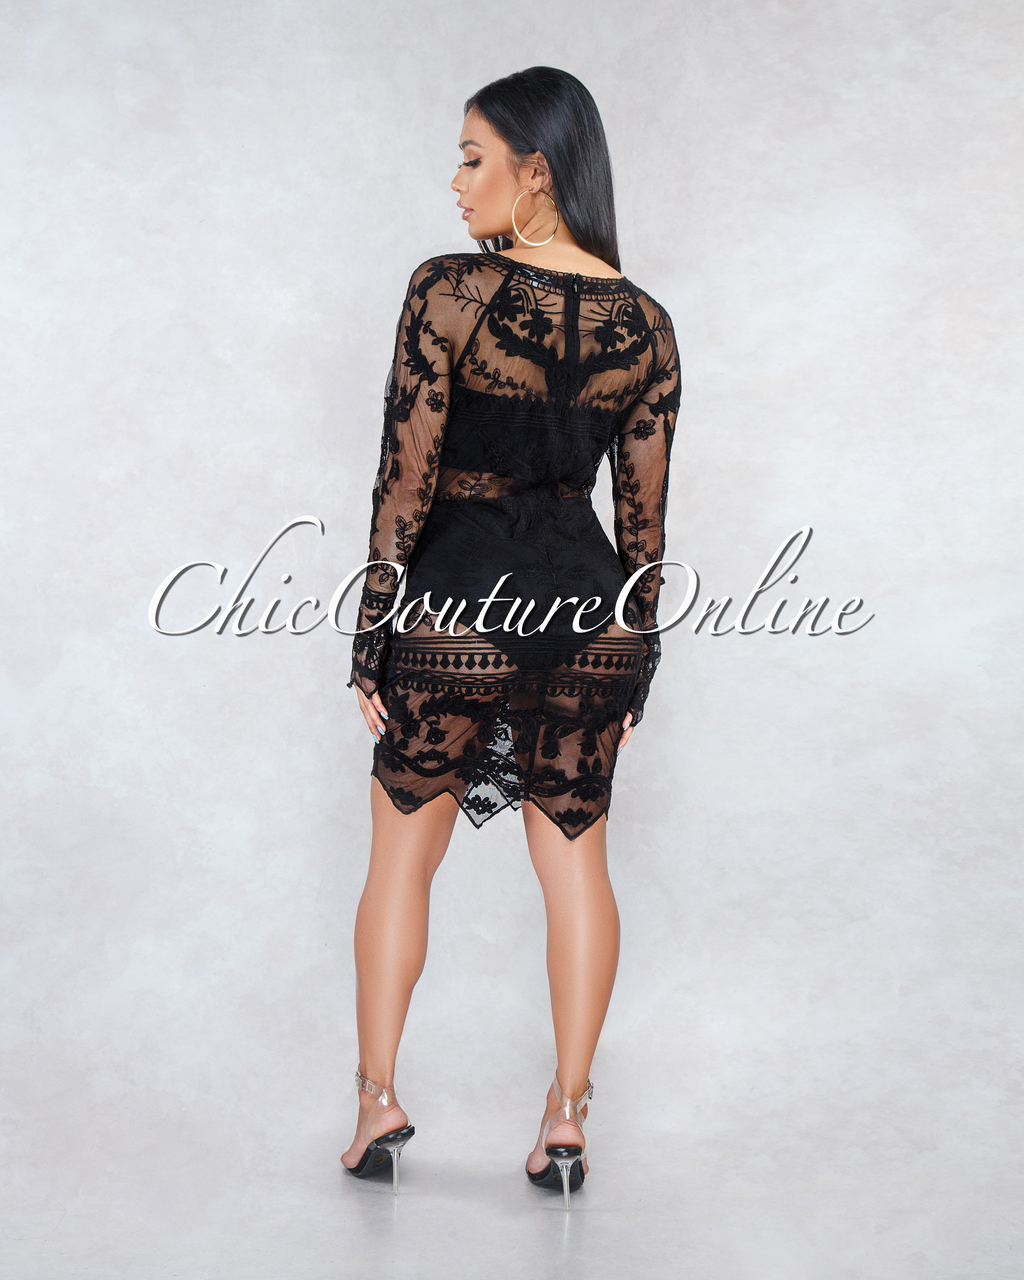 Falone Black Sheer Lace Cover-Up Dress